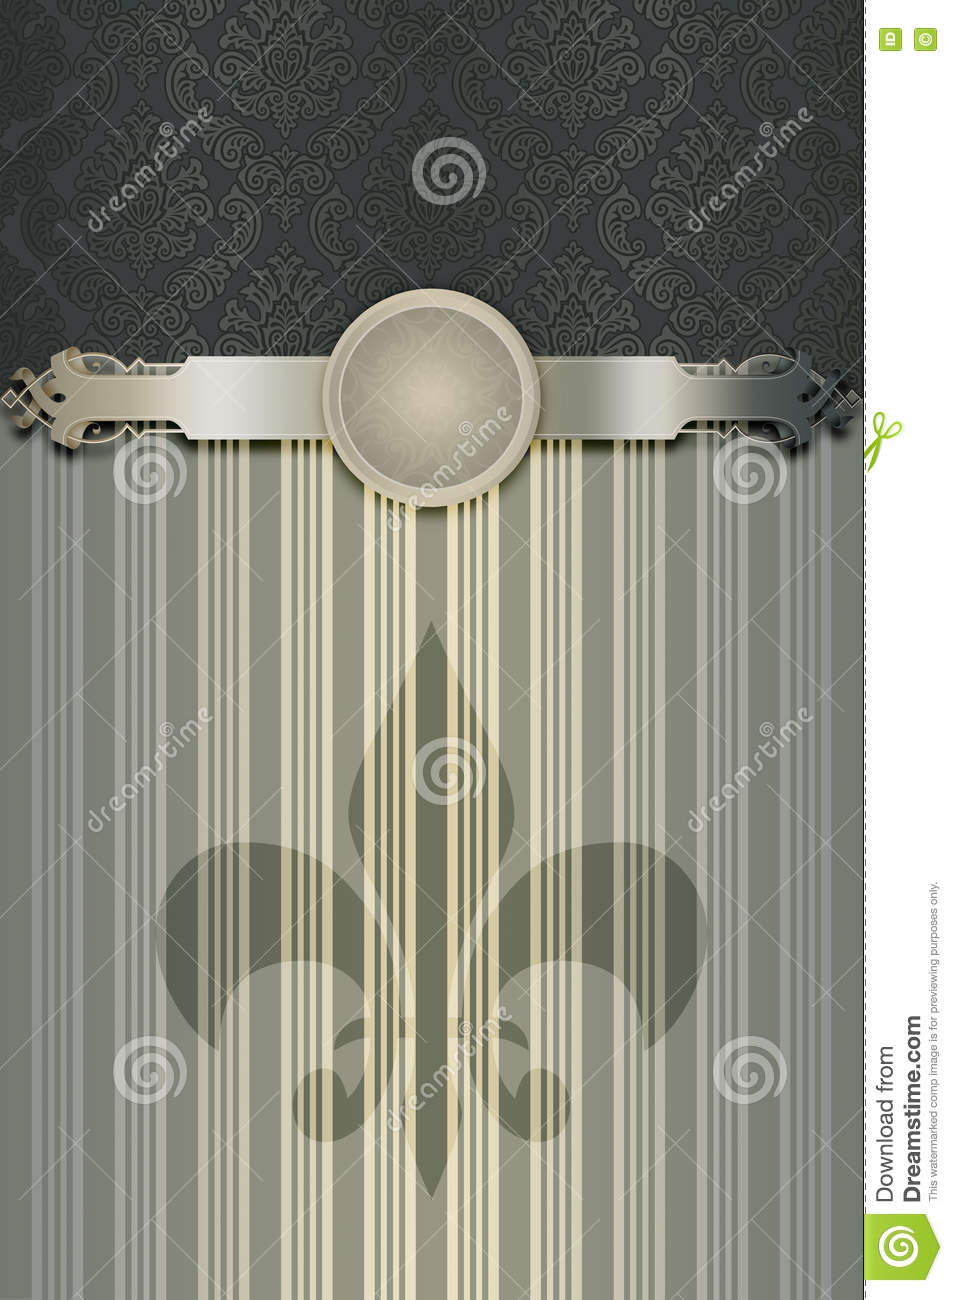 Old Fashioned Book Cover Design ~ Decorative background with old fashioned patterns stock